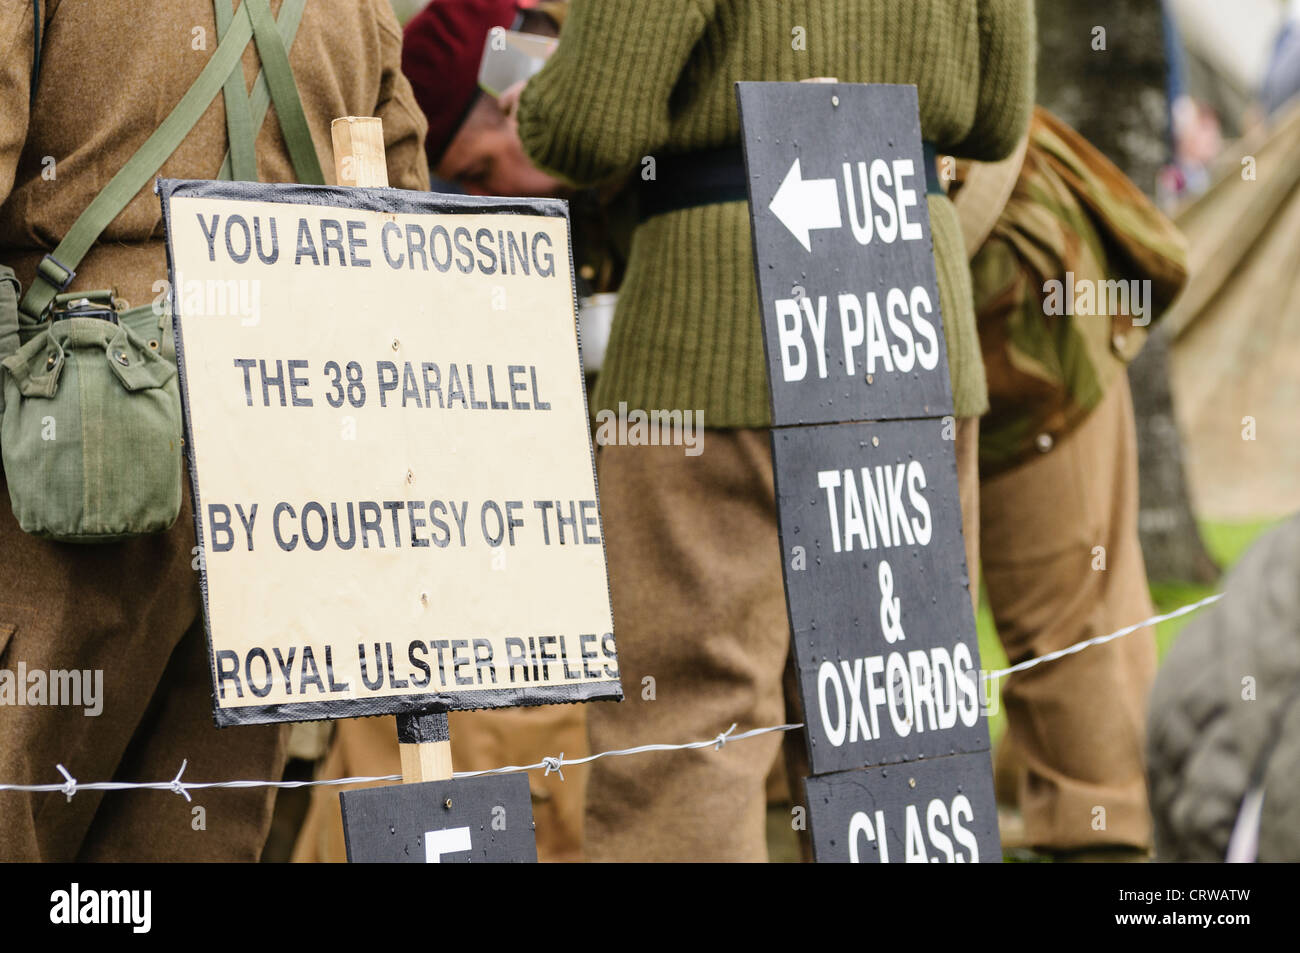 Signs from a WW2 reenactment group 'You are crossing the 38 parallel by courtesy of the Royal Ulster Rifles' - Stock Image